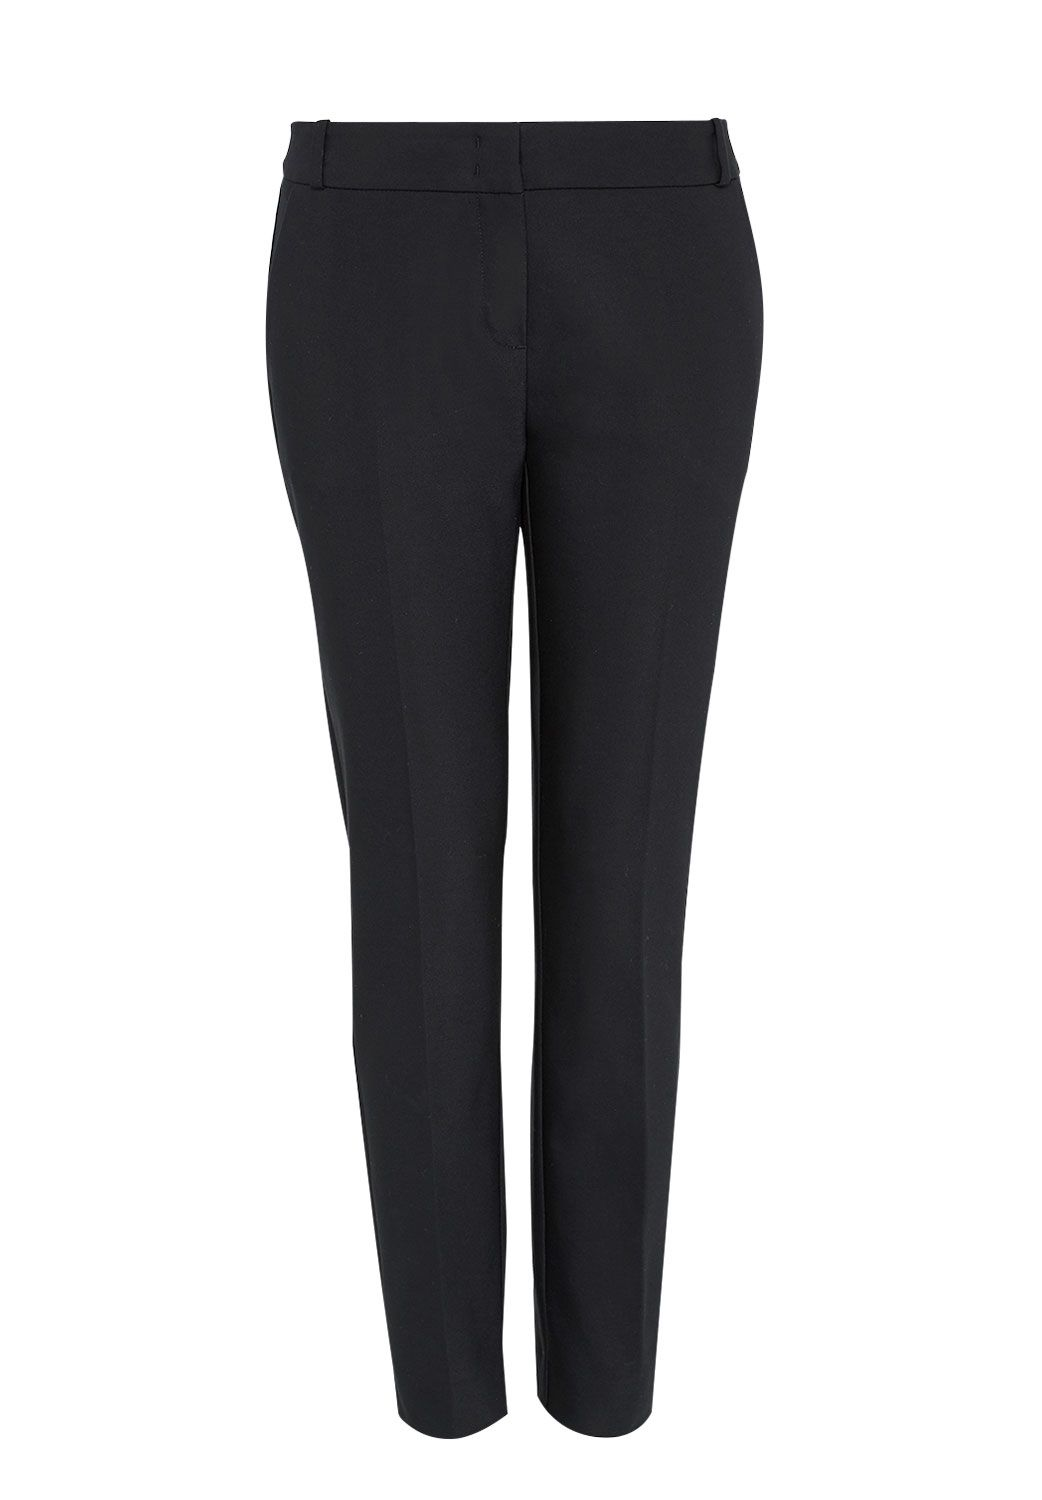 Hallhuber Side Slit Trousers, Black